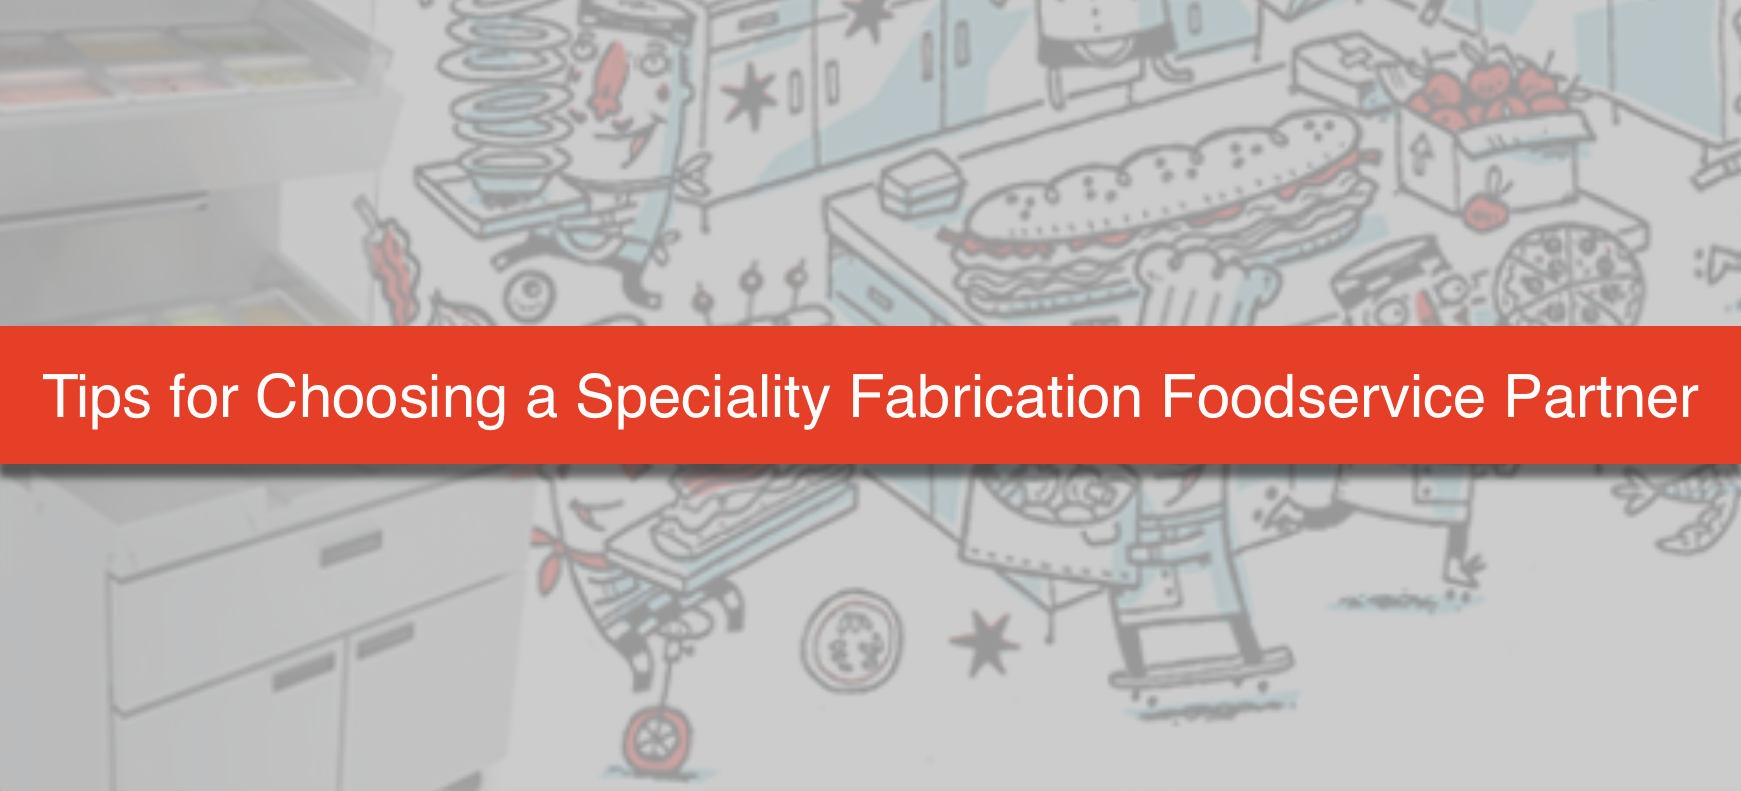 Tips for Choosing a Specialty Fabrication Foodservice Partner.png